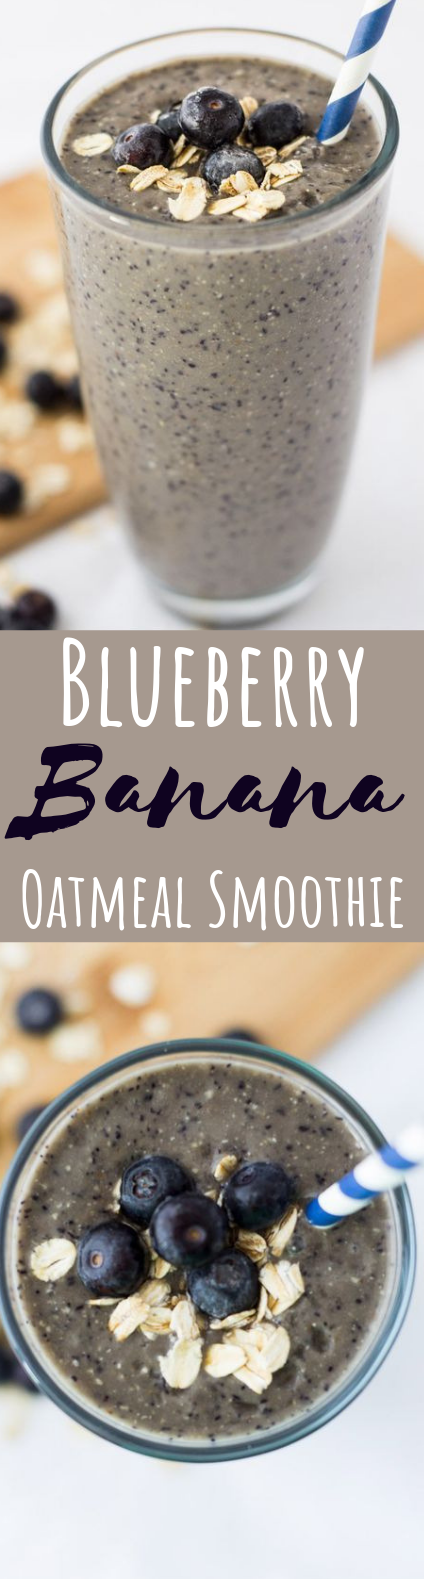 Blueberry Banana Oatmeal Smoothie #drinks #healthy